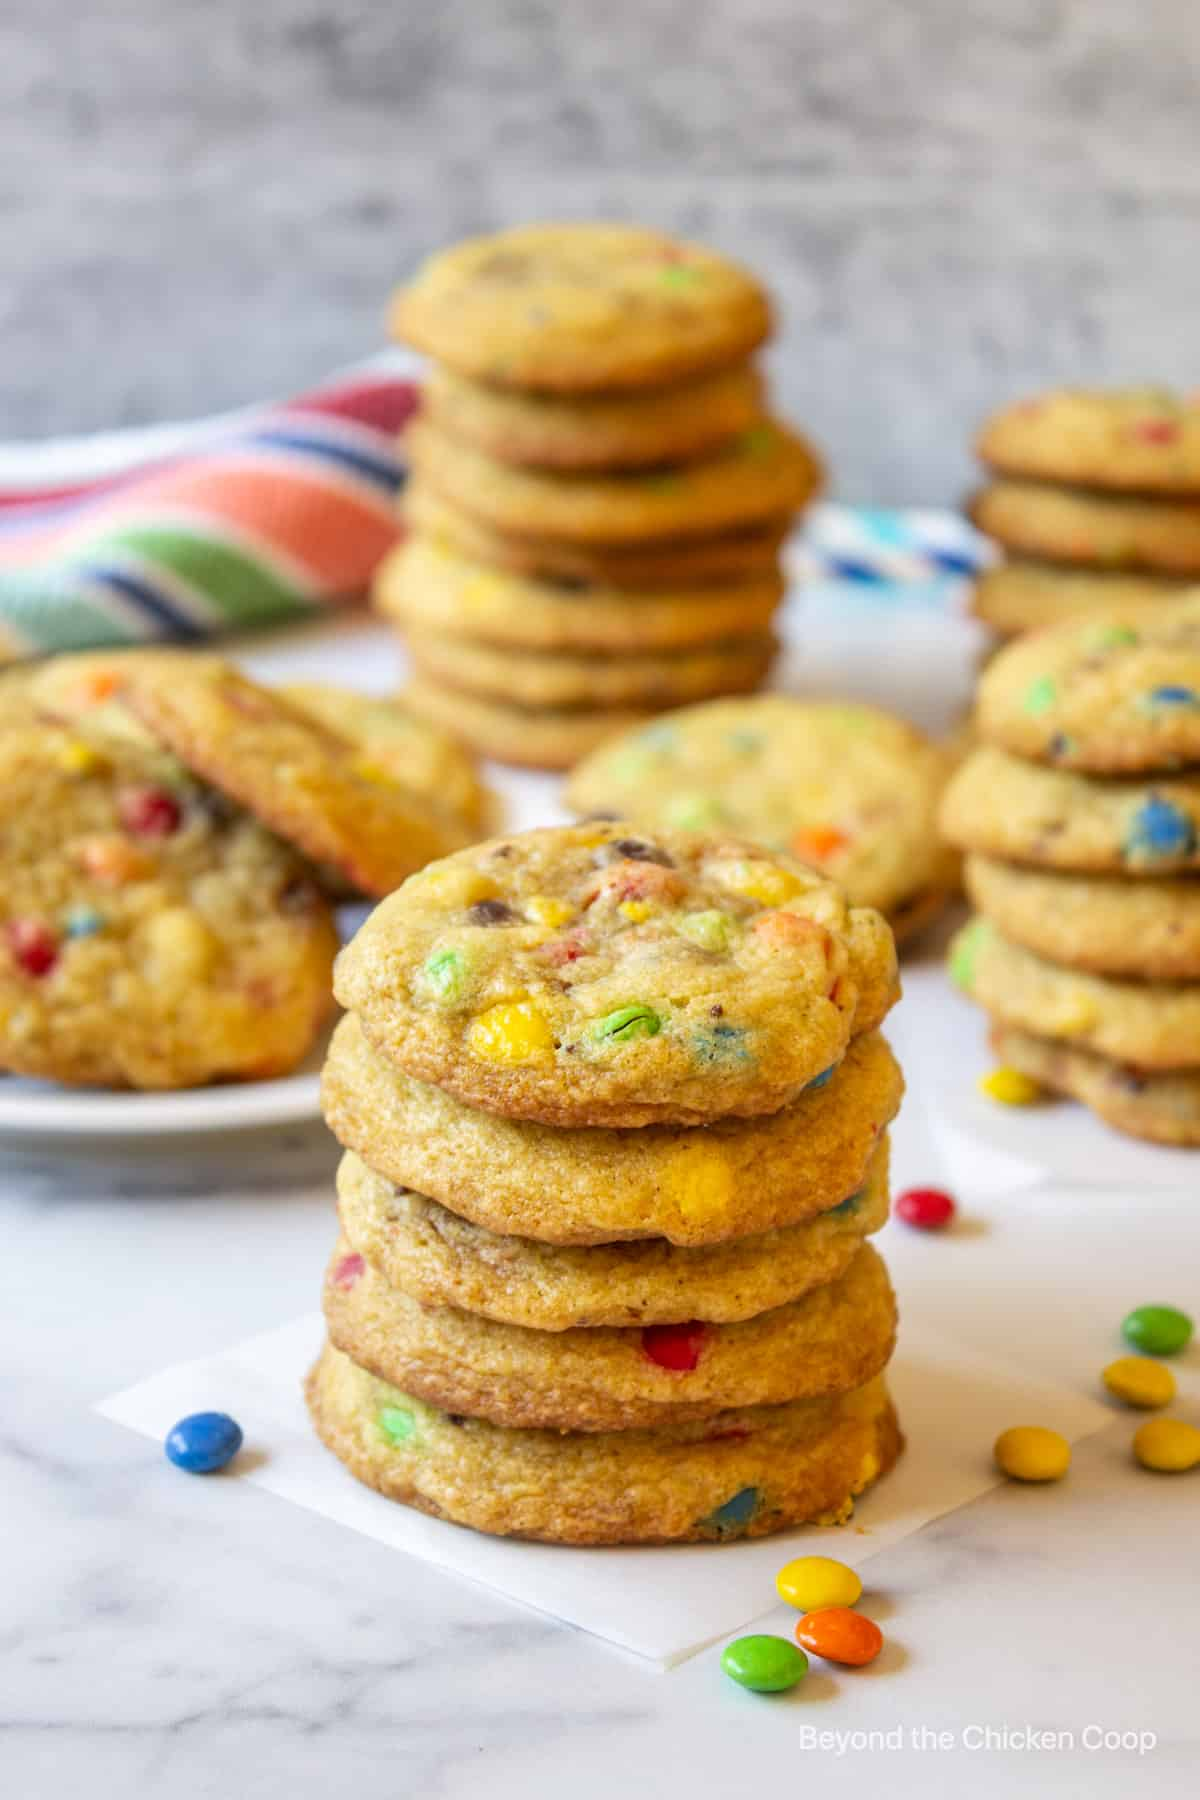 A stack of cookies filled with candy pieces.